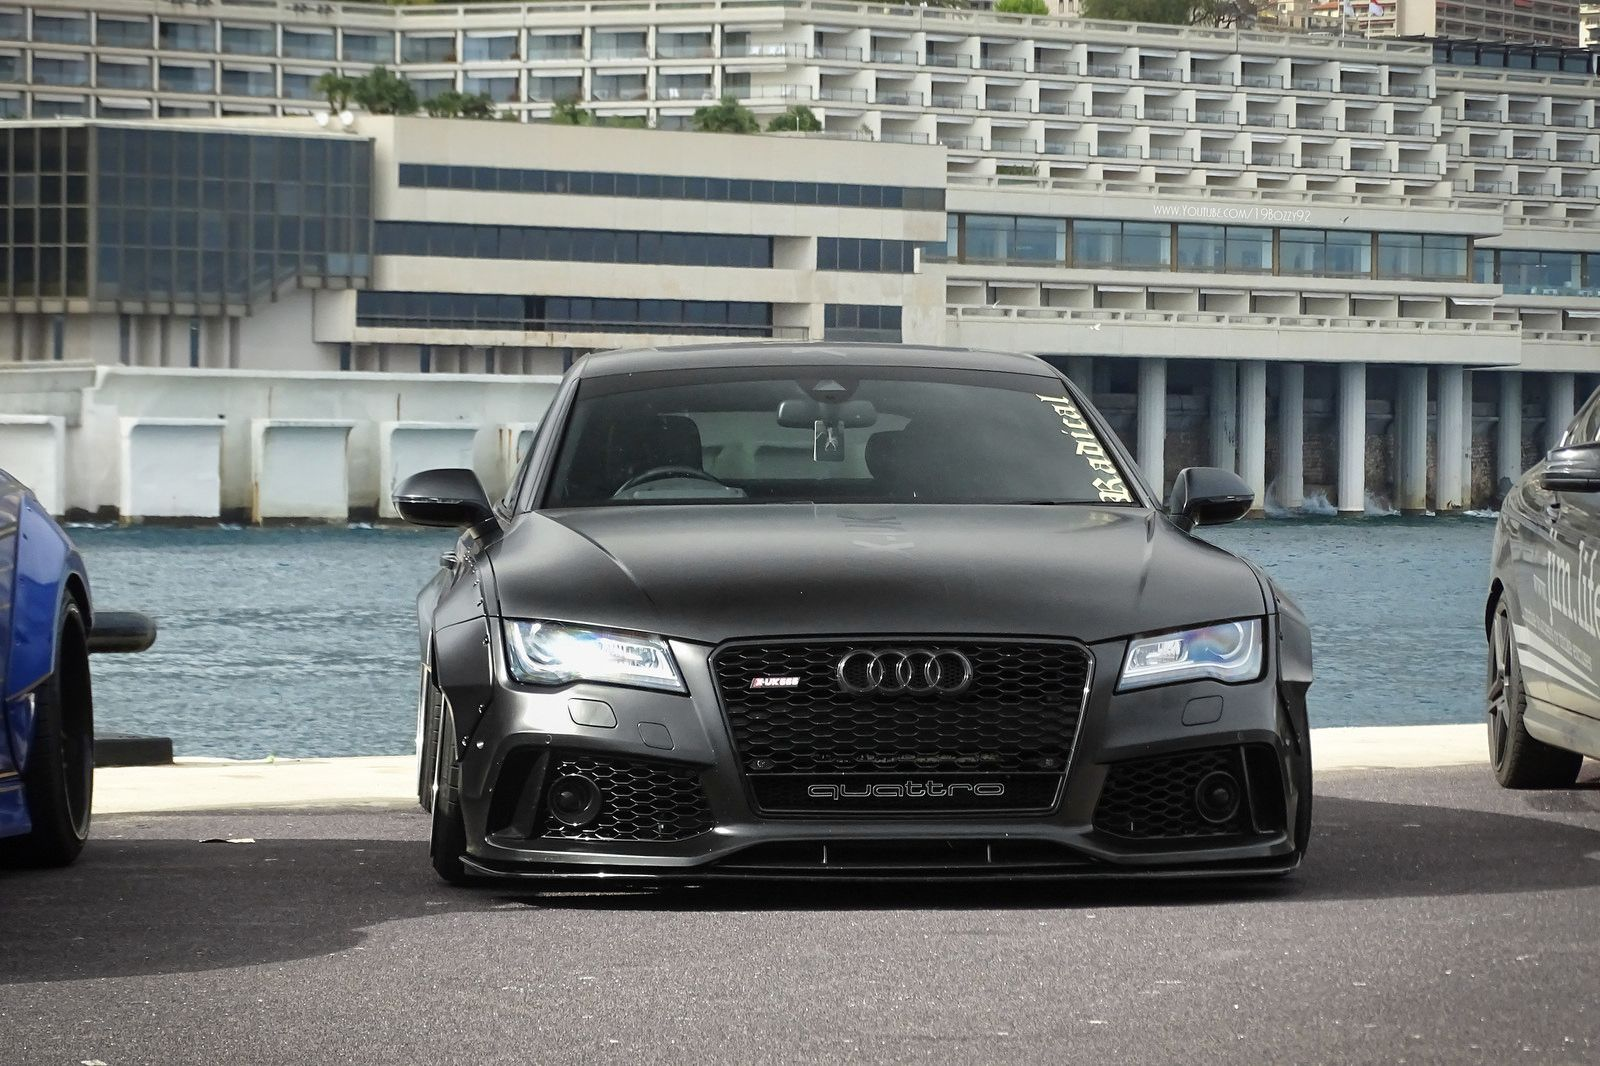 https://flic.kr/p/N92YAY | Widebody A7 | Audi A7 3.0 TDI Widebody kit  Facebook Page    Youtube Channel   Instagram